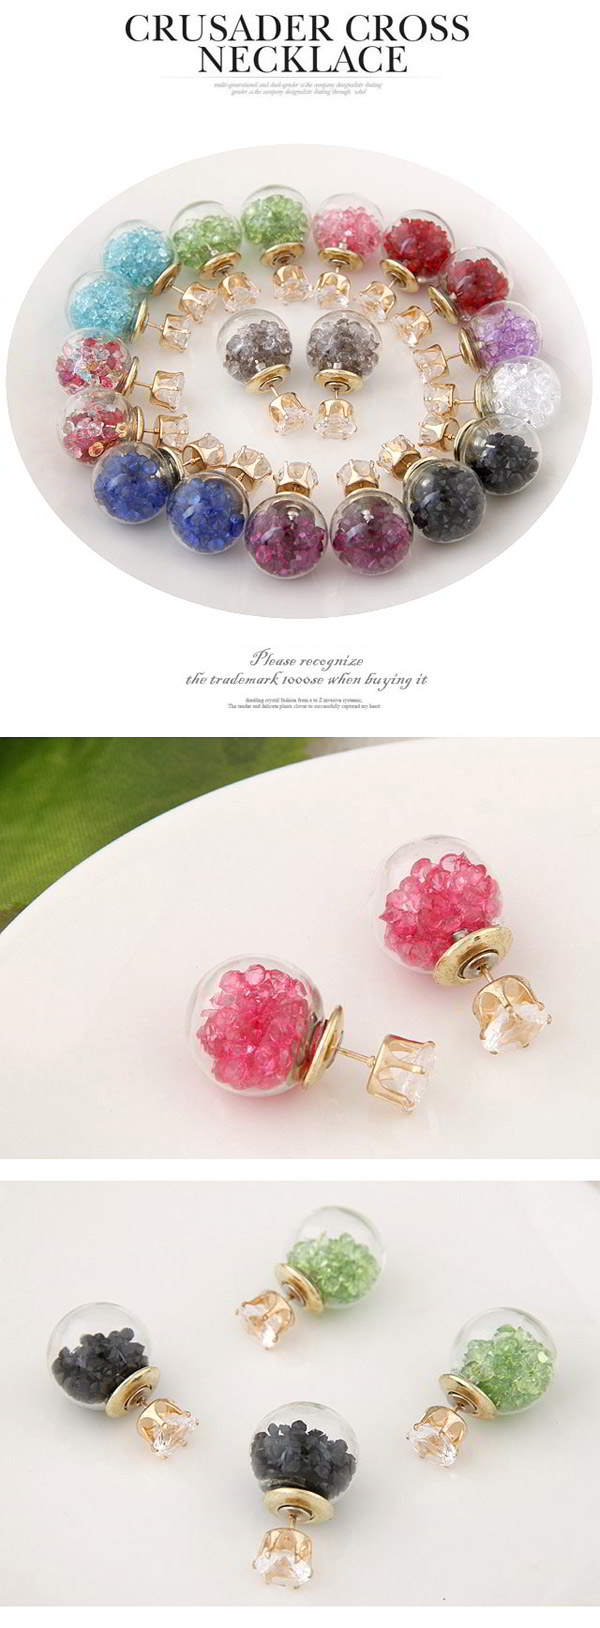 Anting Tusuk T6E8D5